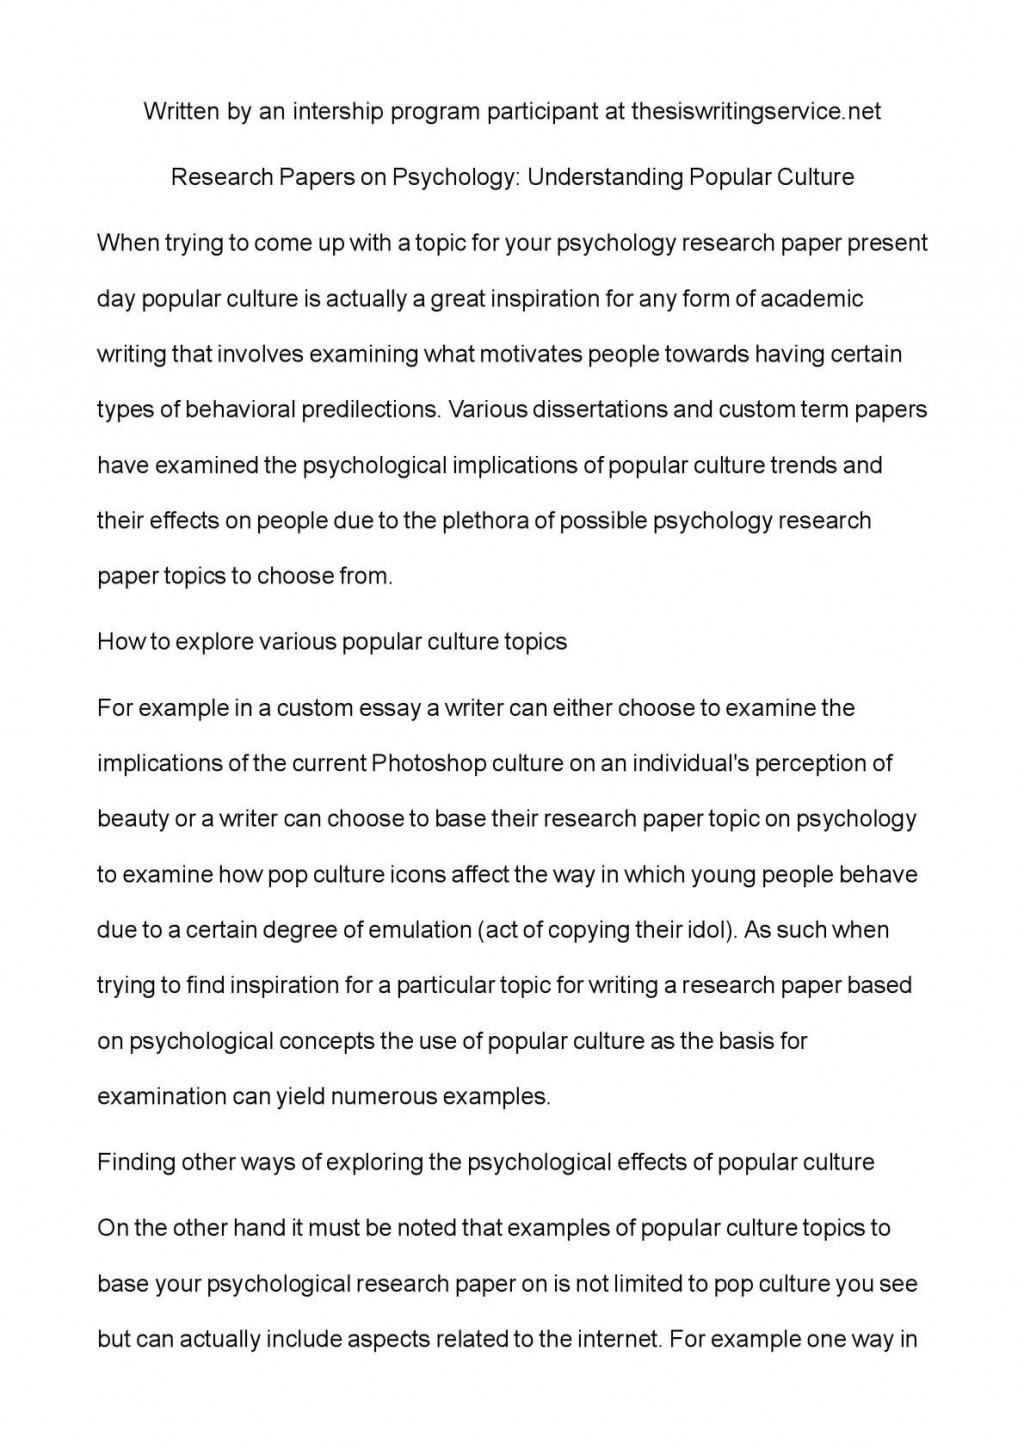 003 P1 Research Paper Cultural Psychology Topics Sensational For Large